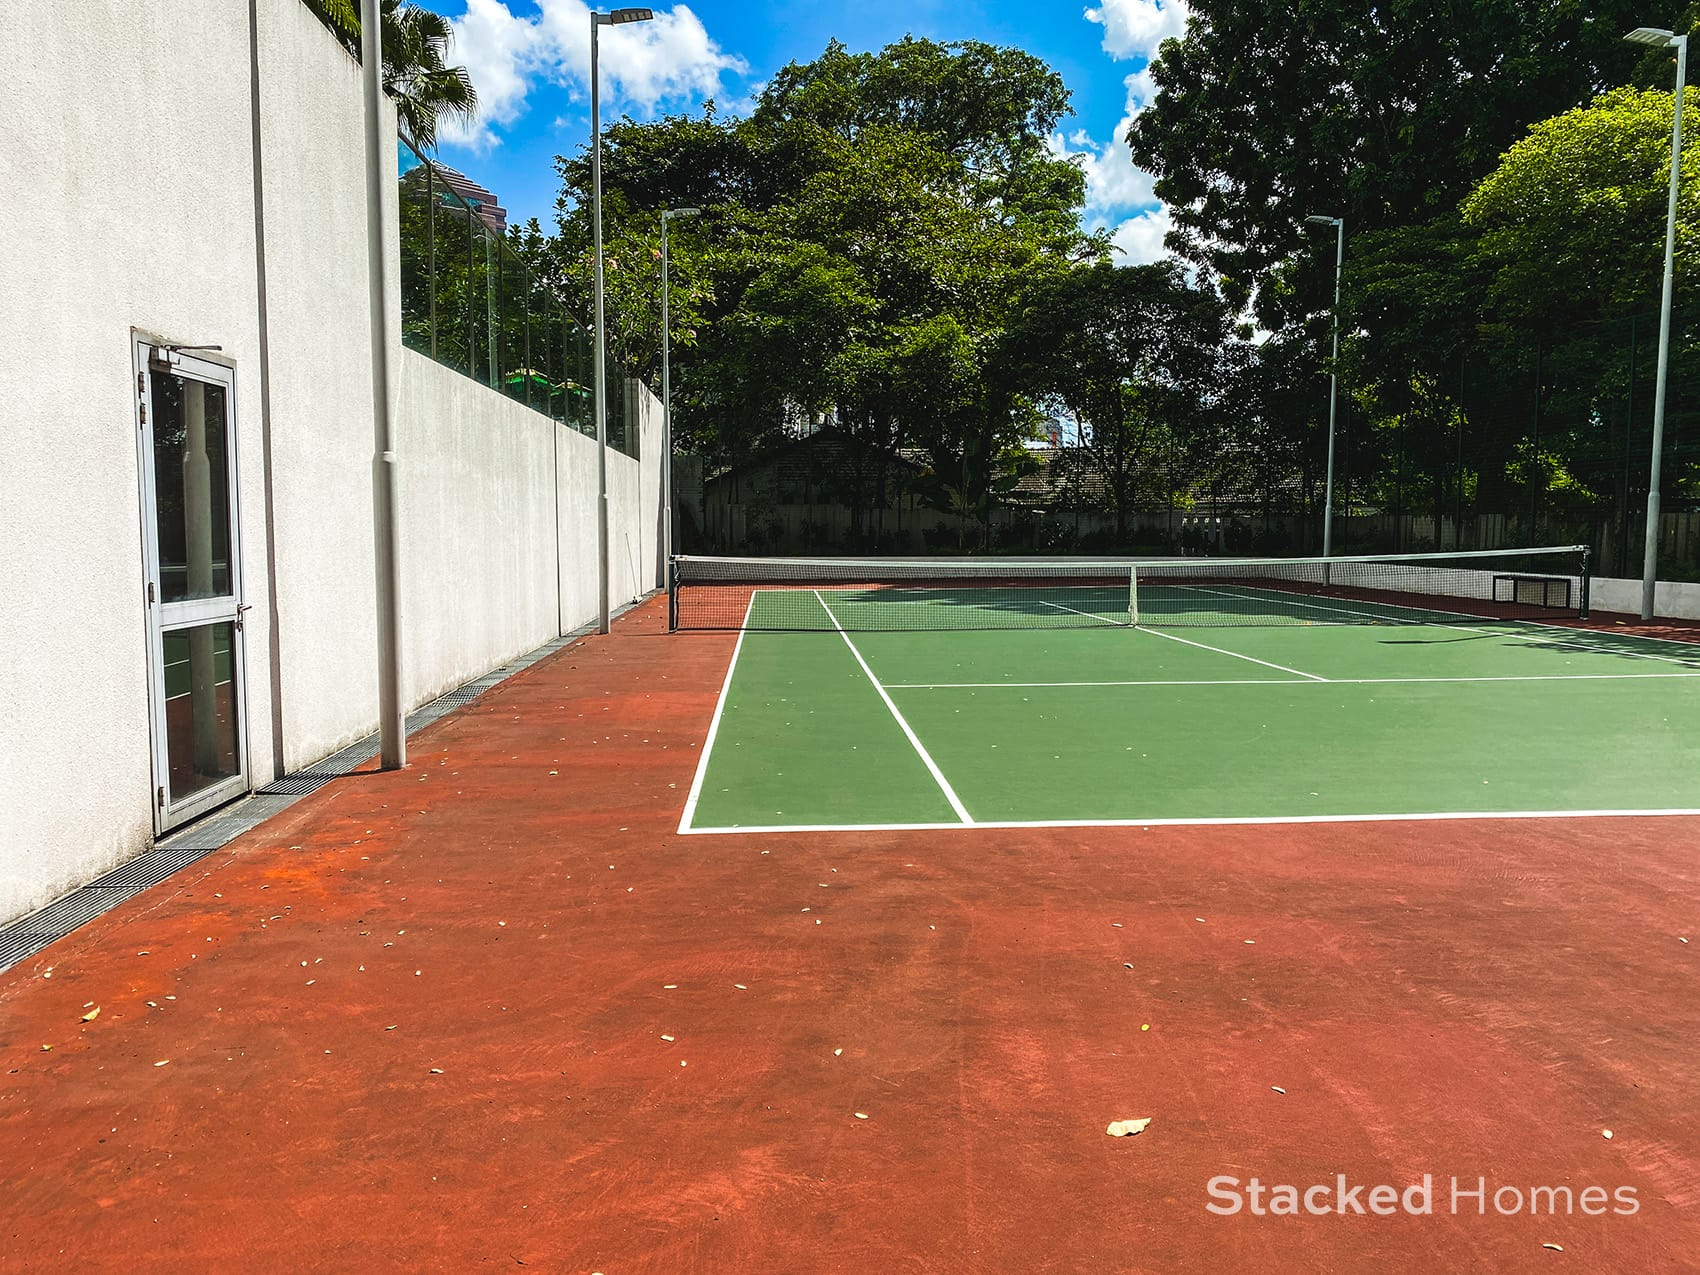 paterson suites tennis court